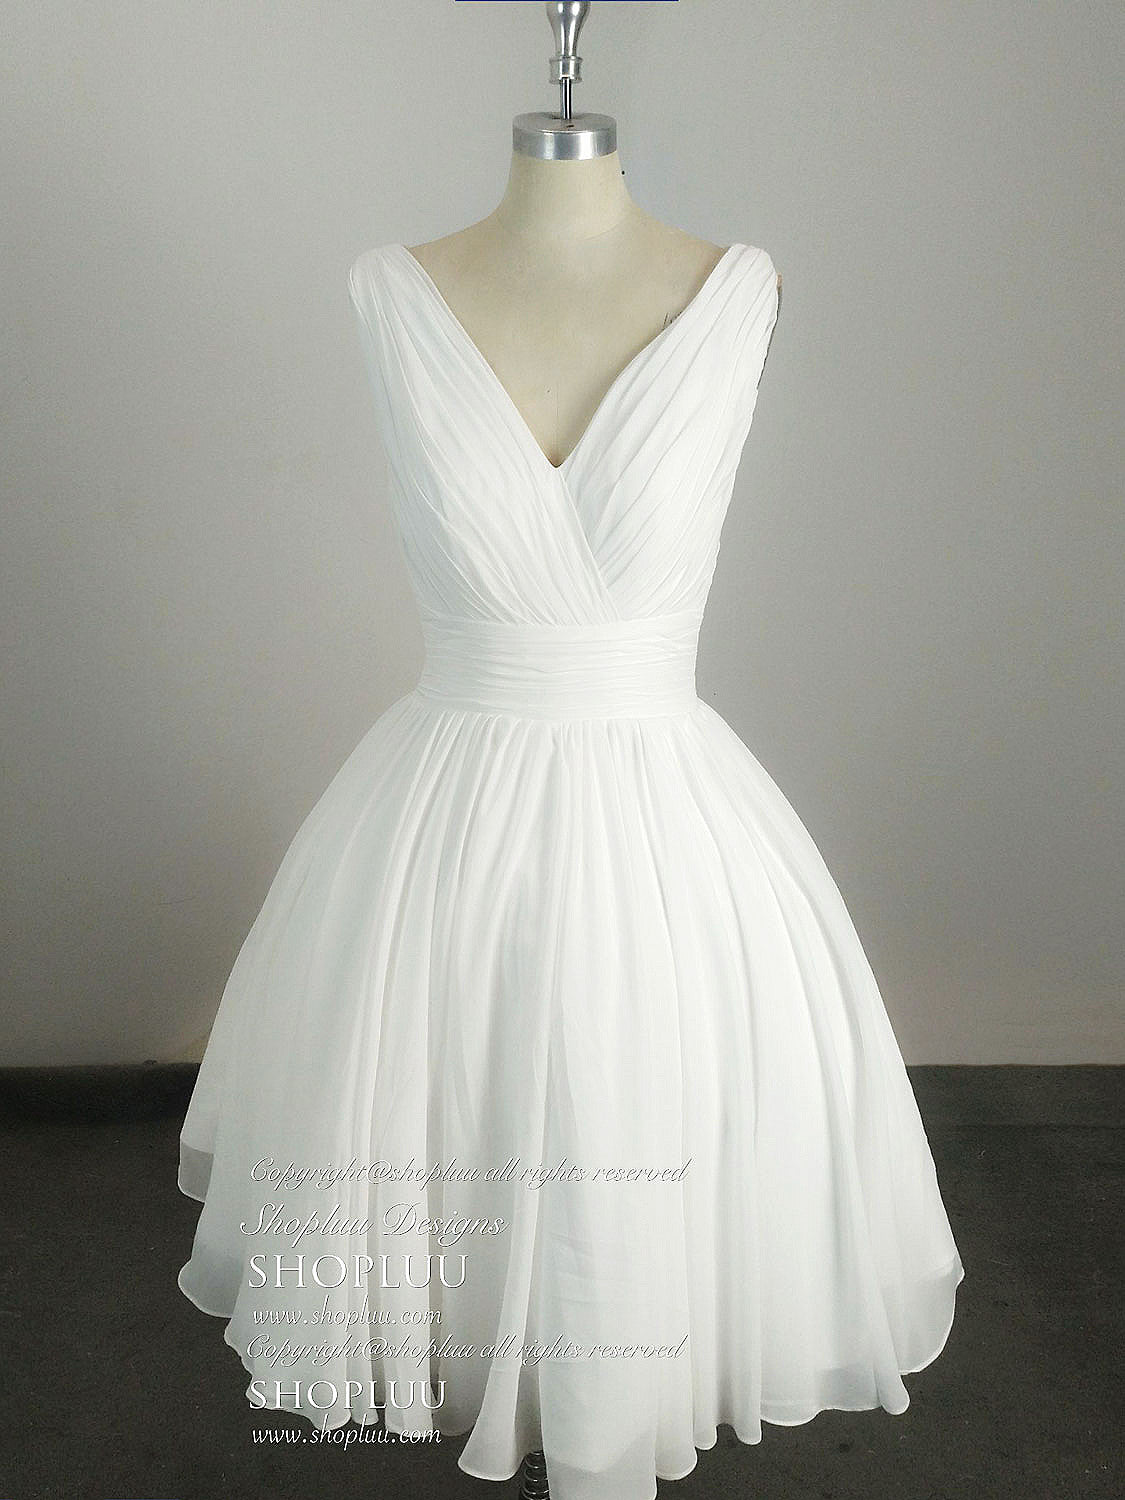 9dfa6a27b3 Simple v neck white chiffon short prom dress